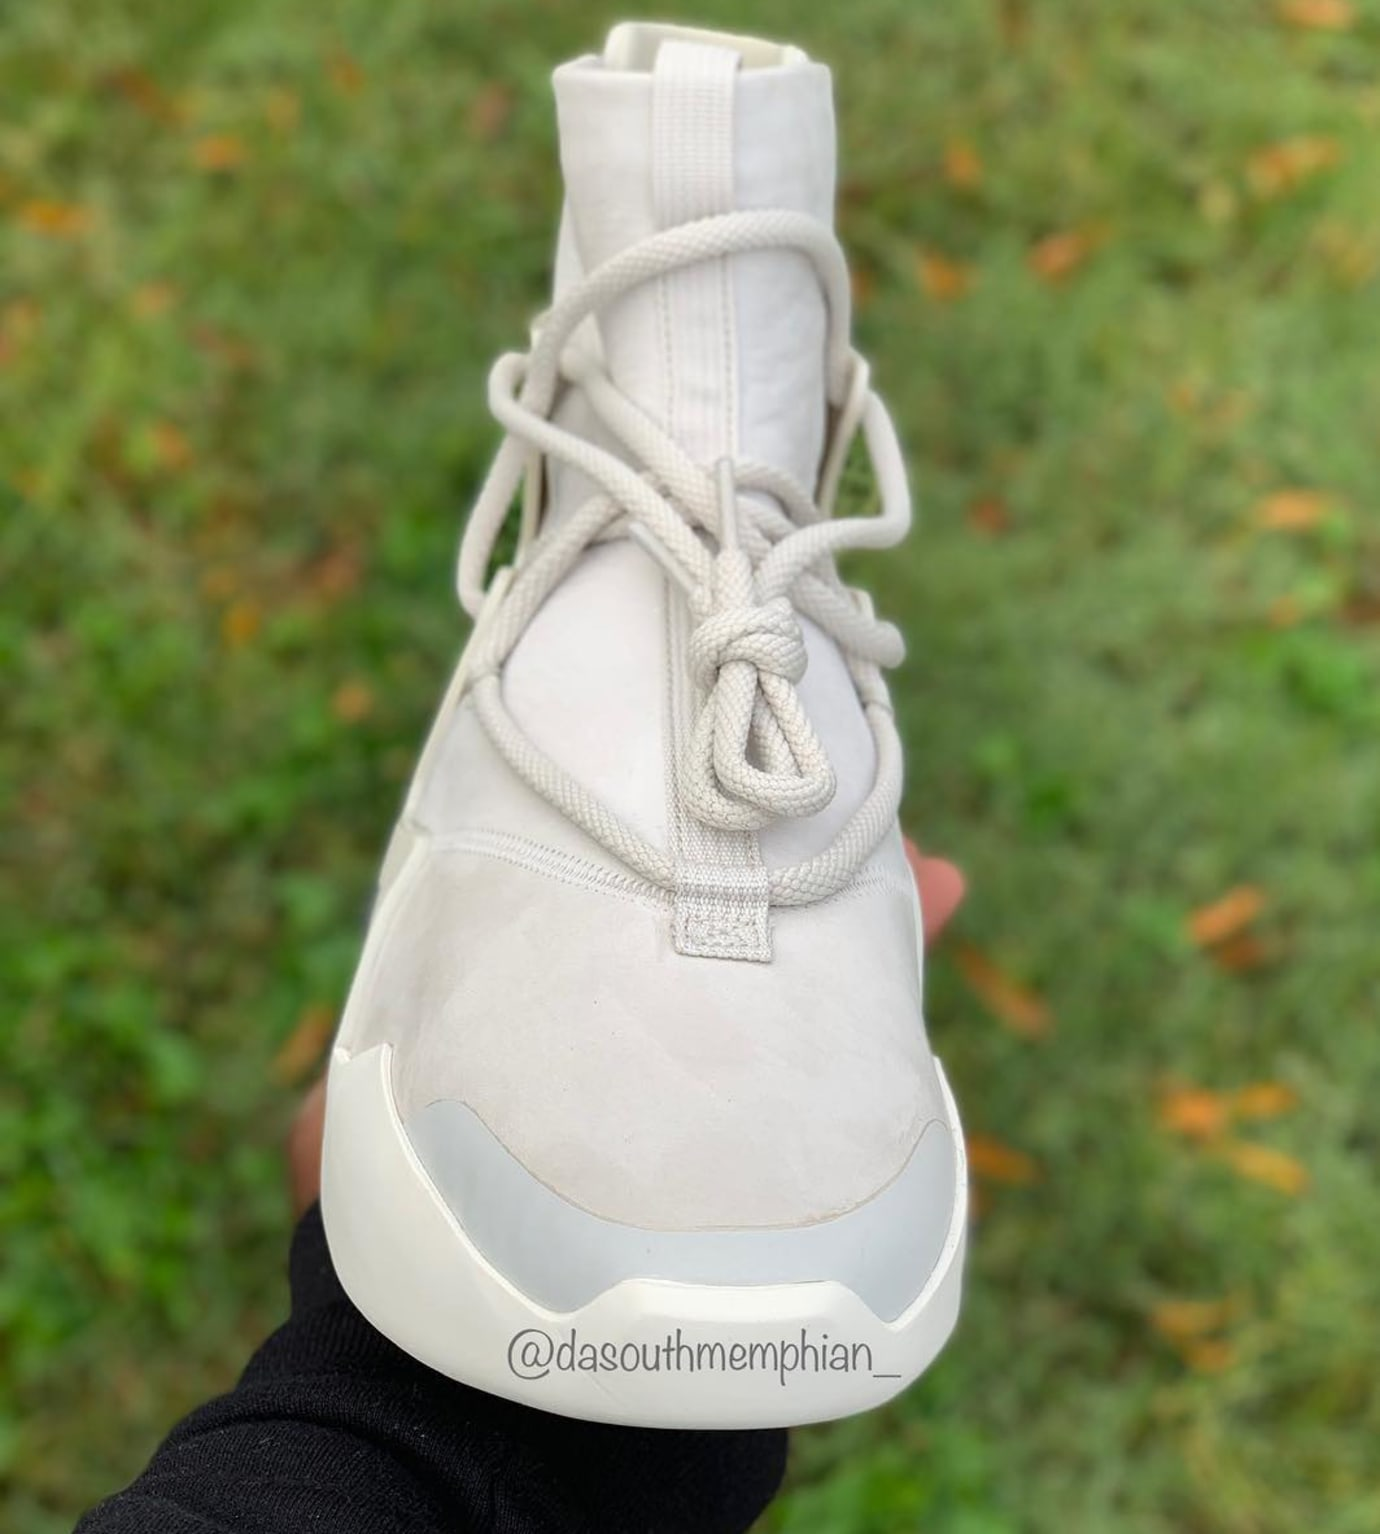 a8617d012b34 Jerry Lorenzo x Nike Air Fear of God 1 and Fear of God SA Release ...